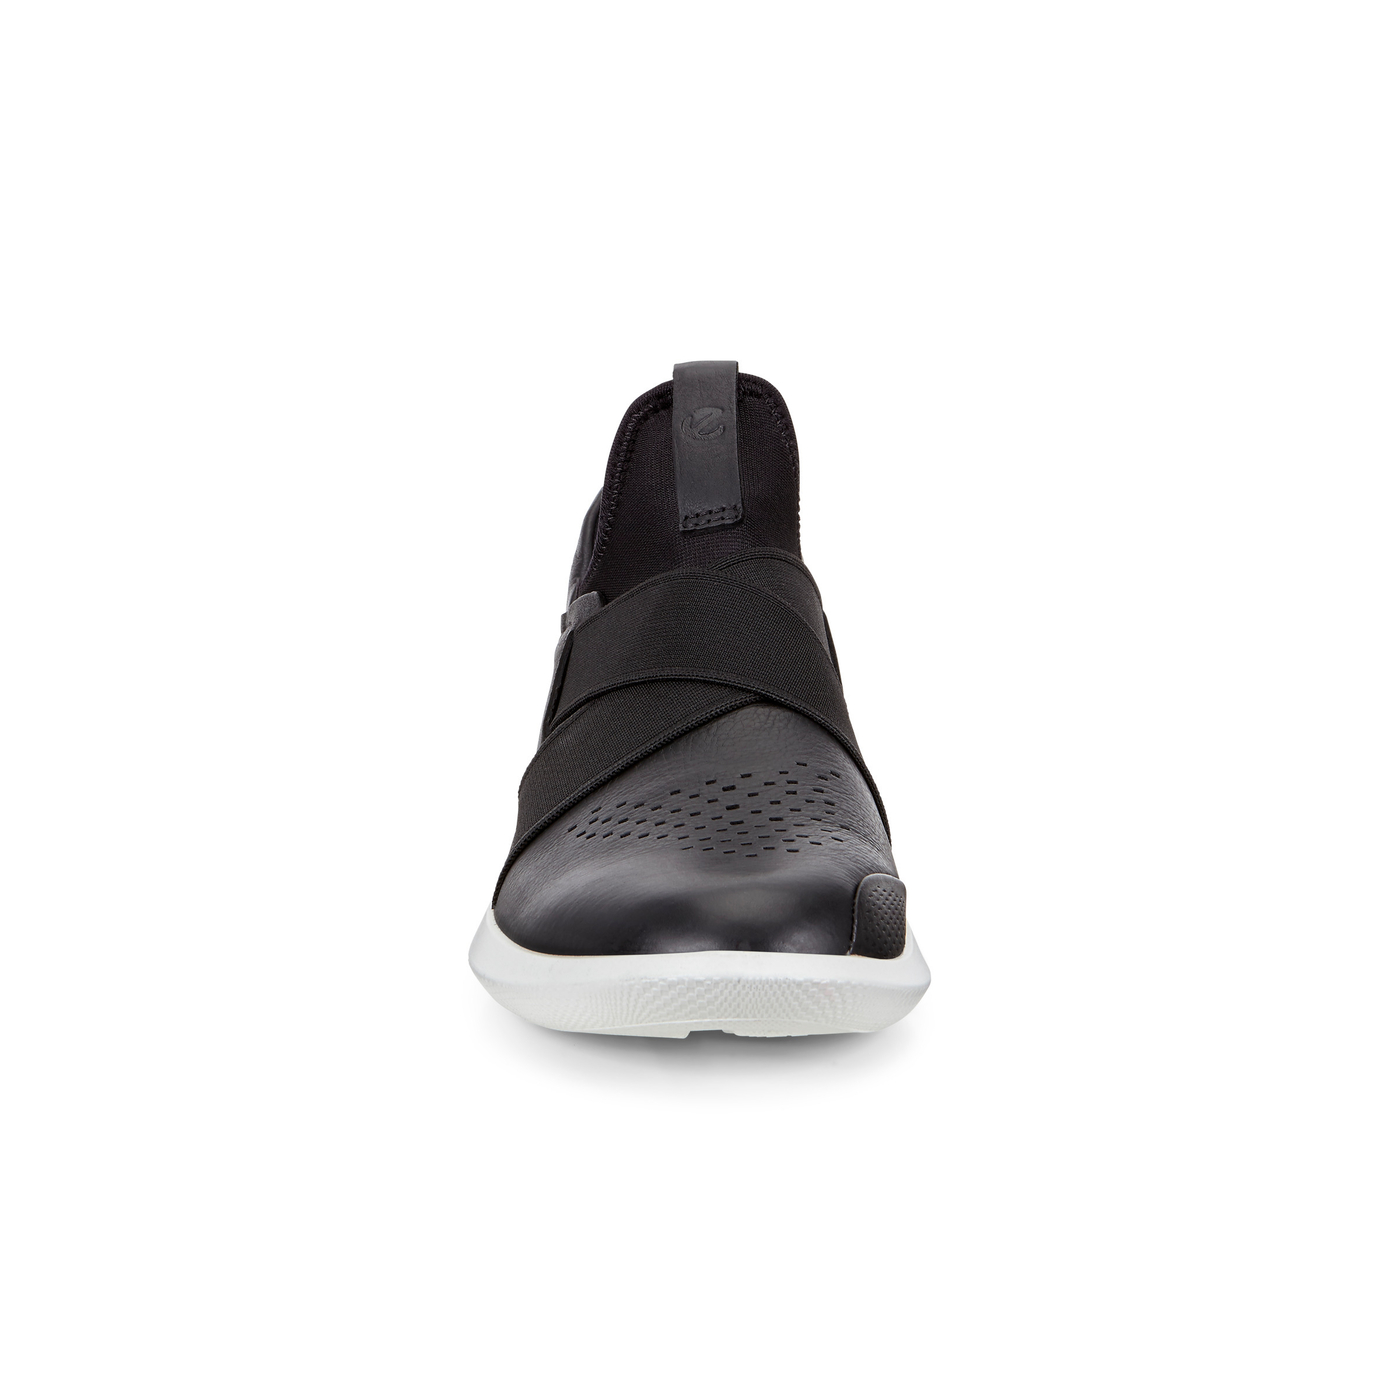 ECCO SCINAPSE Ladies Band Slip On